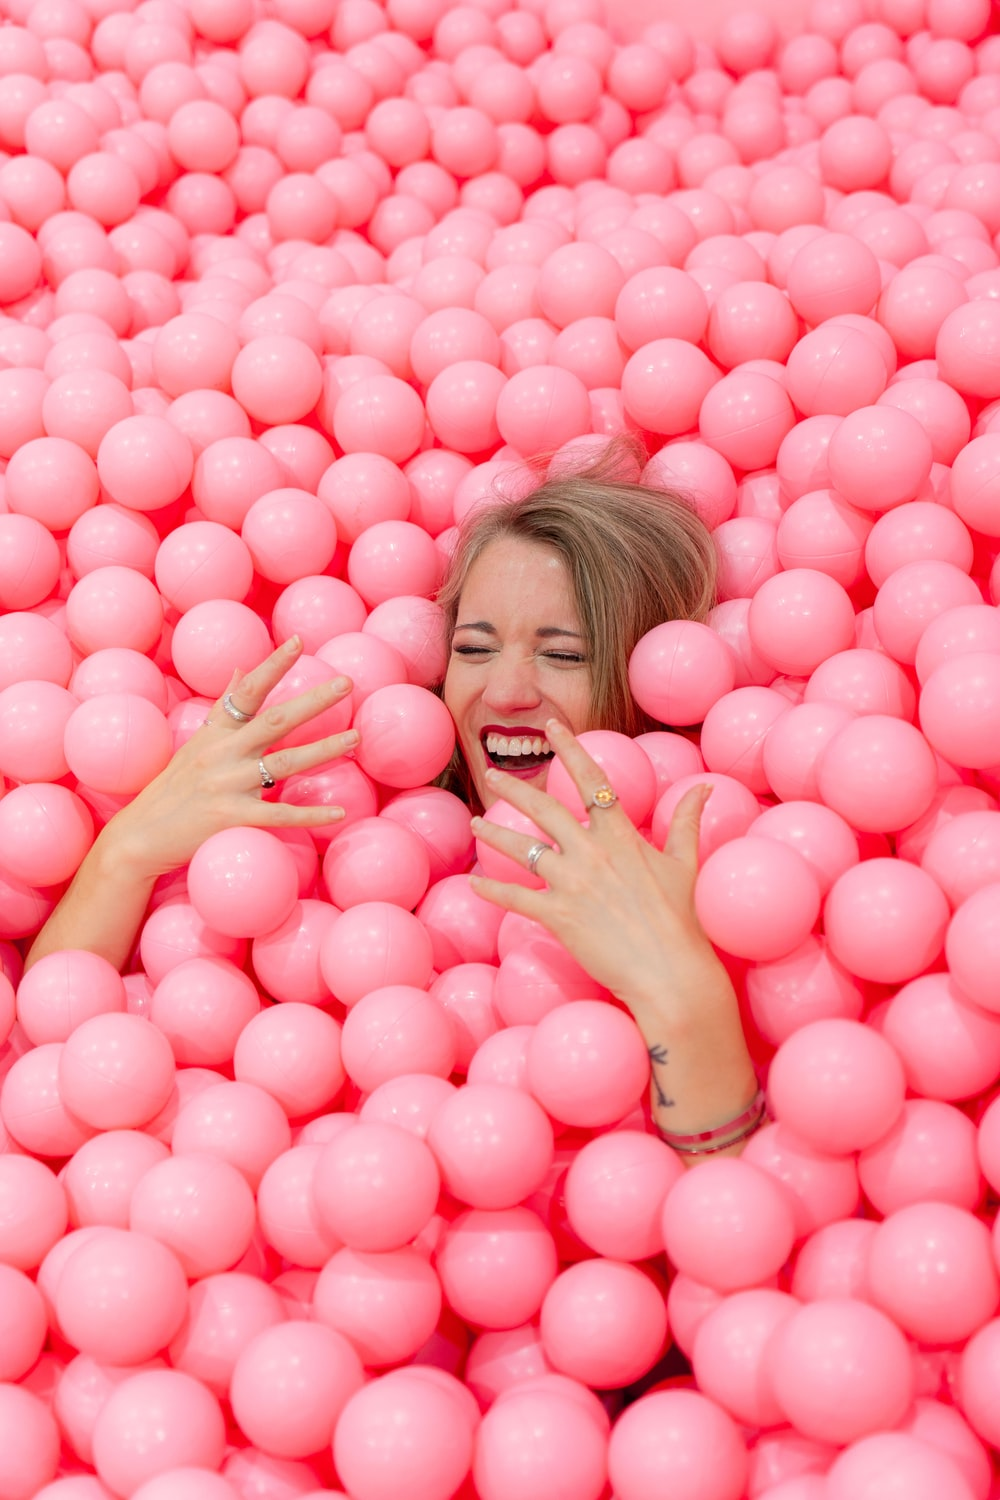 blonde haired woman lying on pink round balls